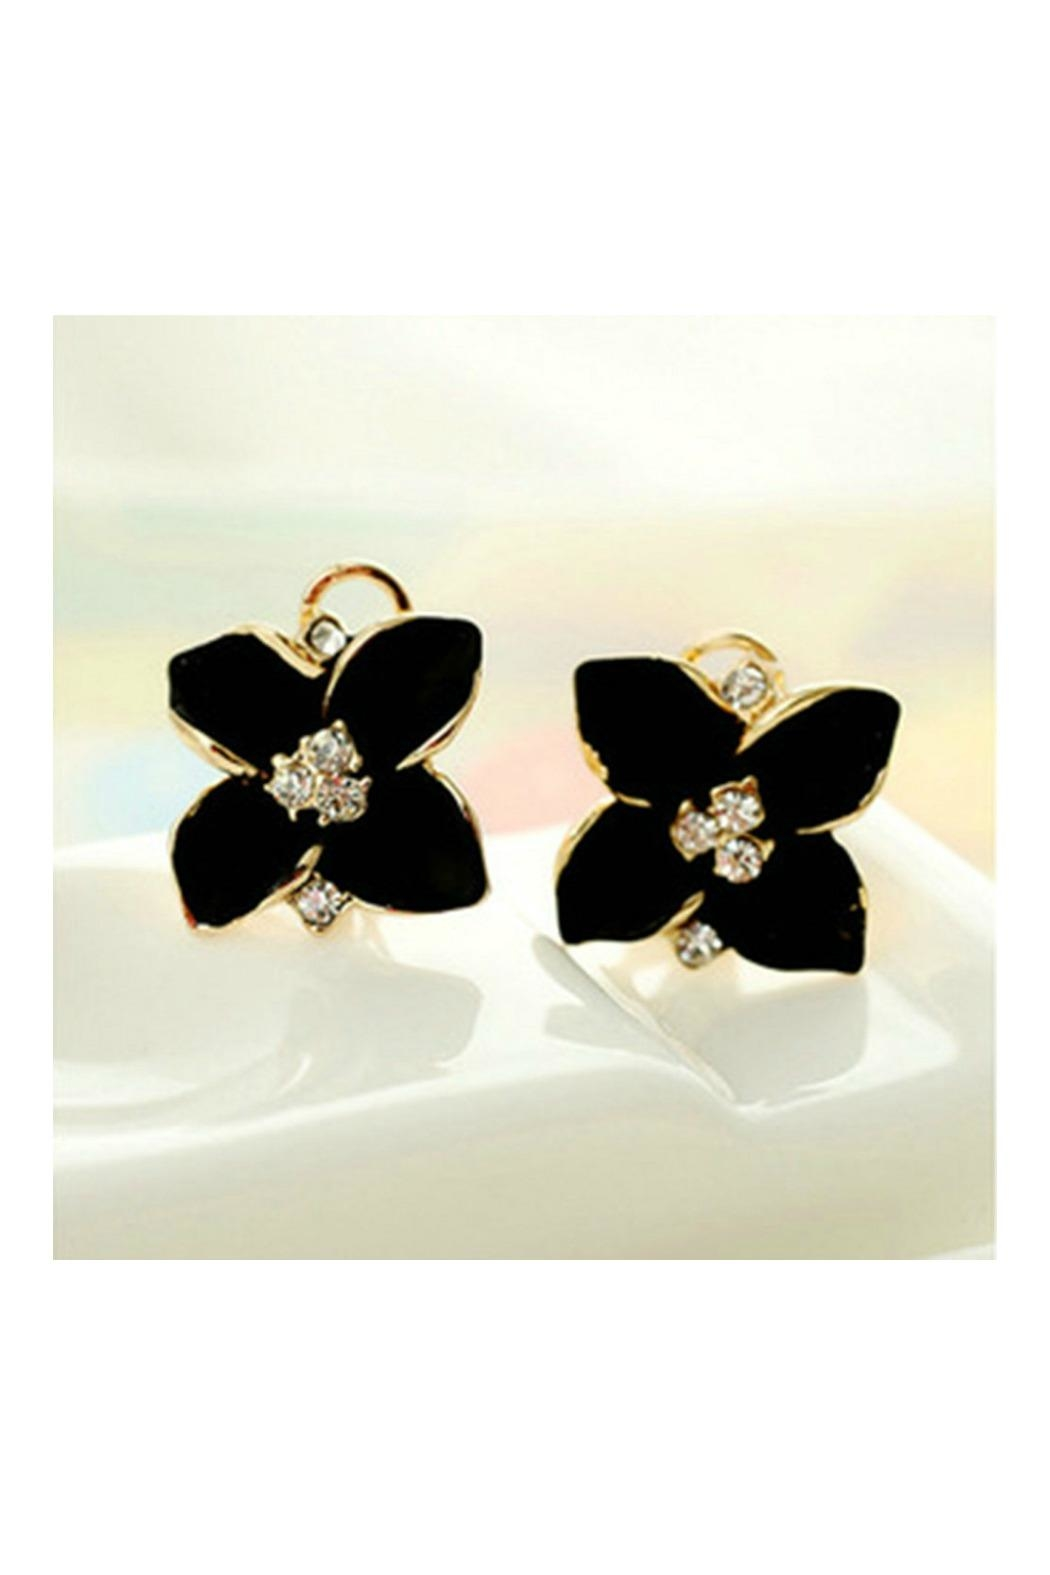 140fce2d86a8 Petunias Black Gardenia Earring from Naples by Petunias of Naples ...